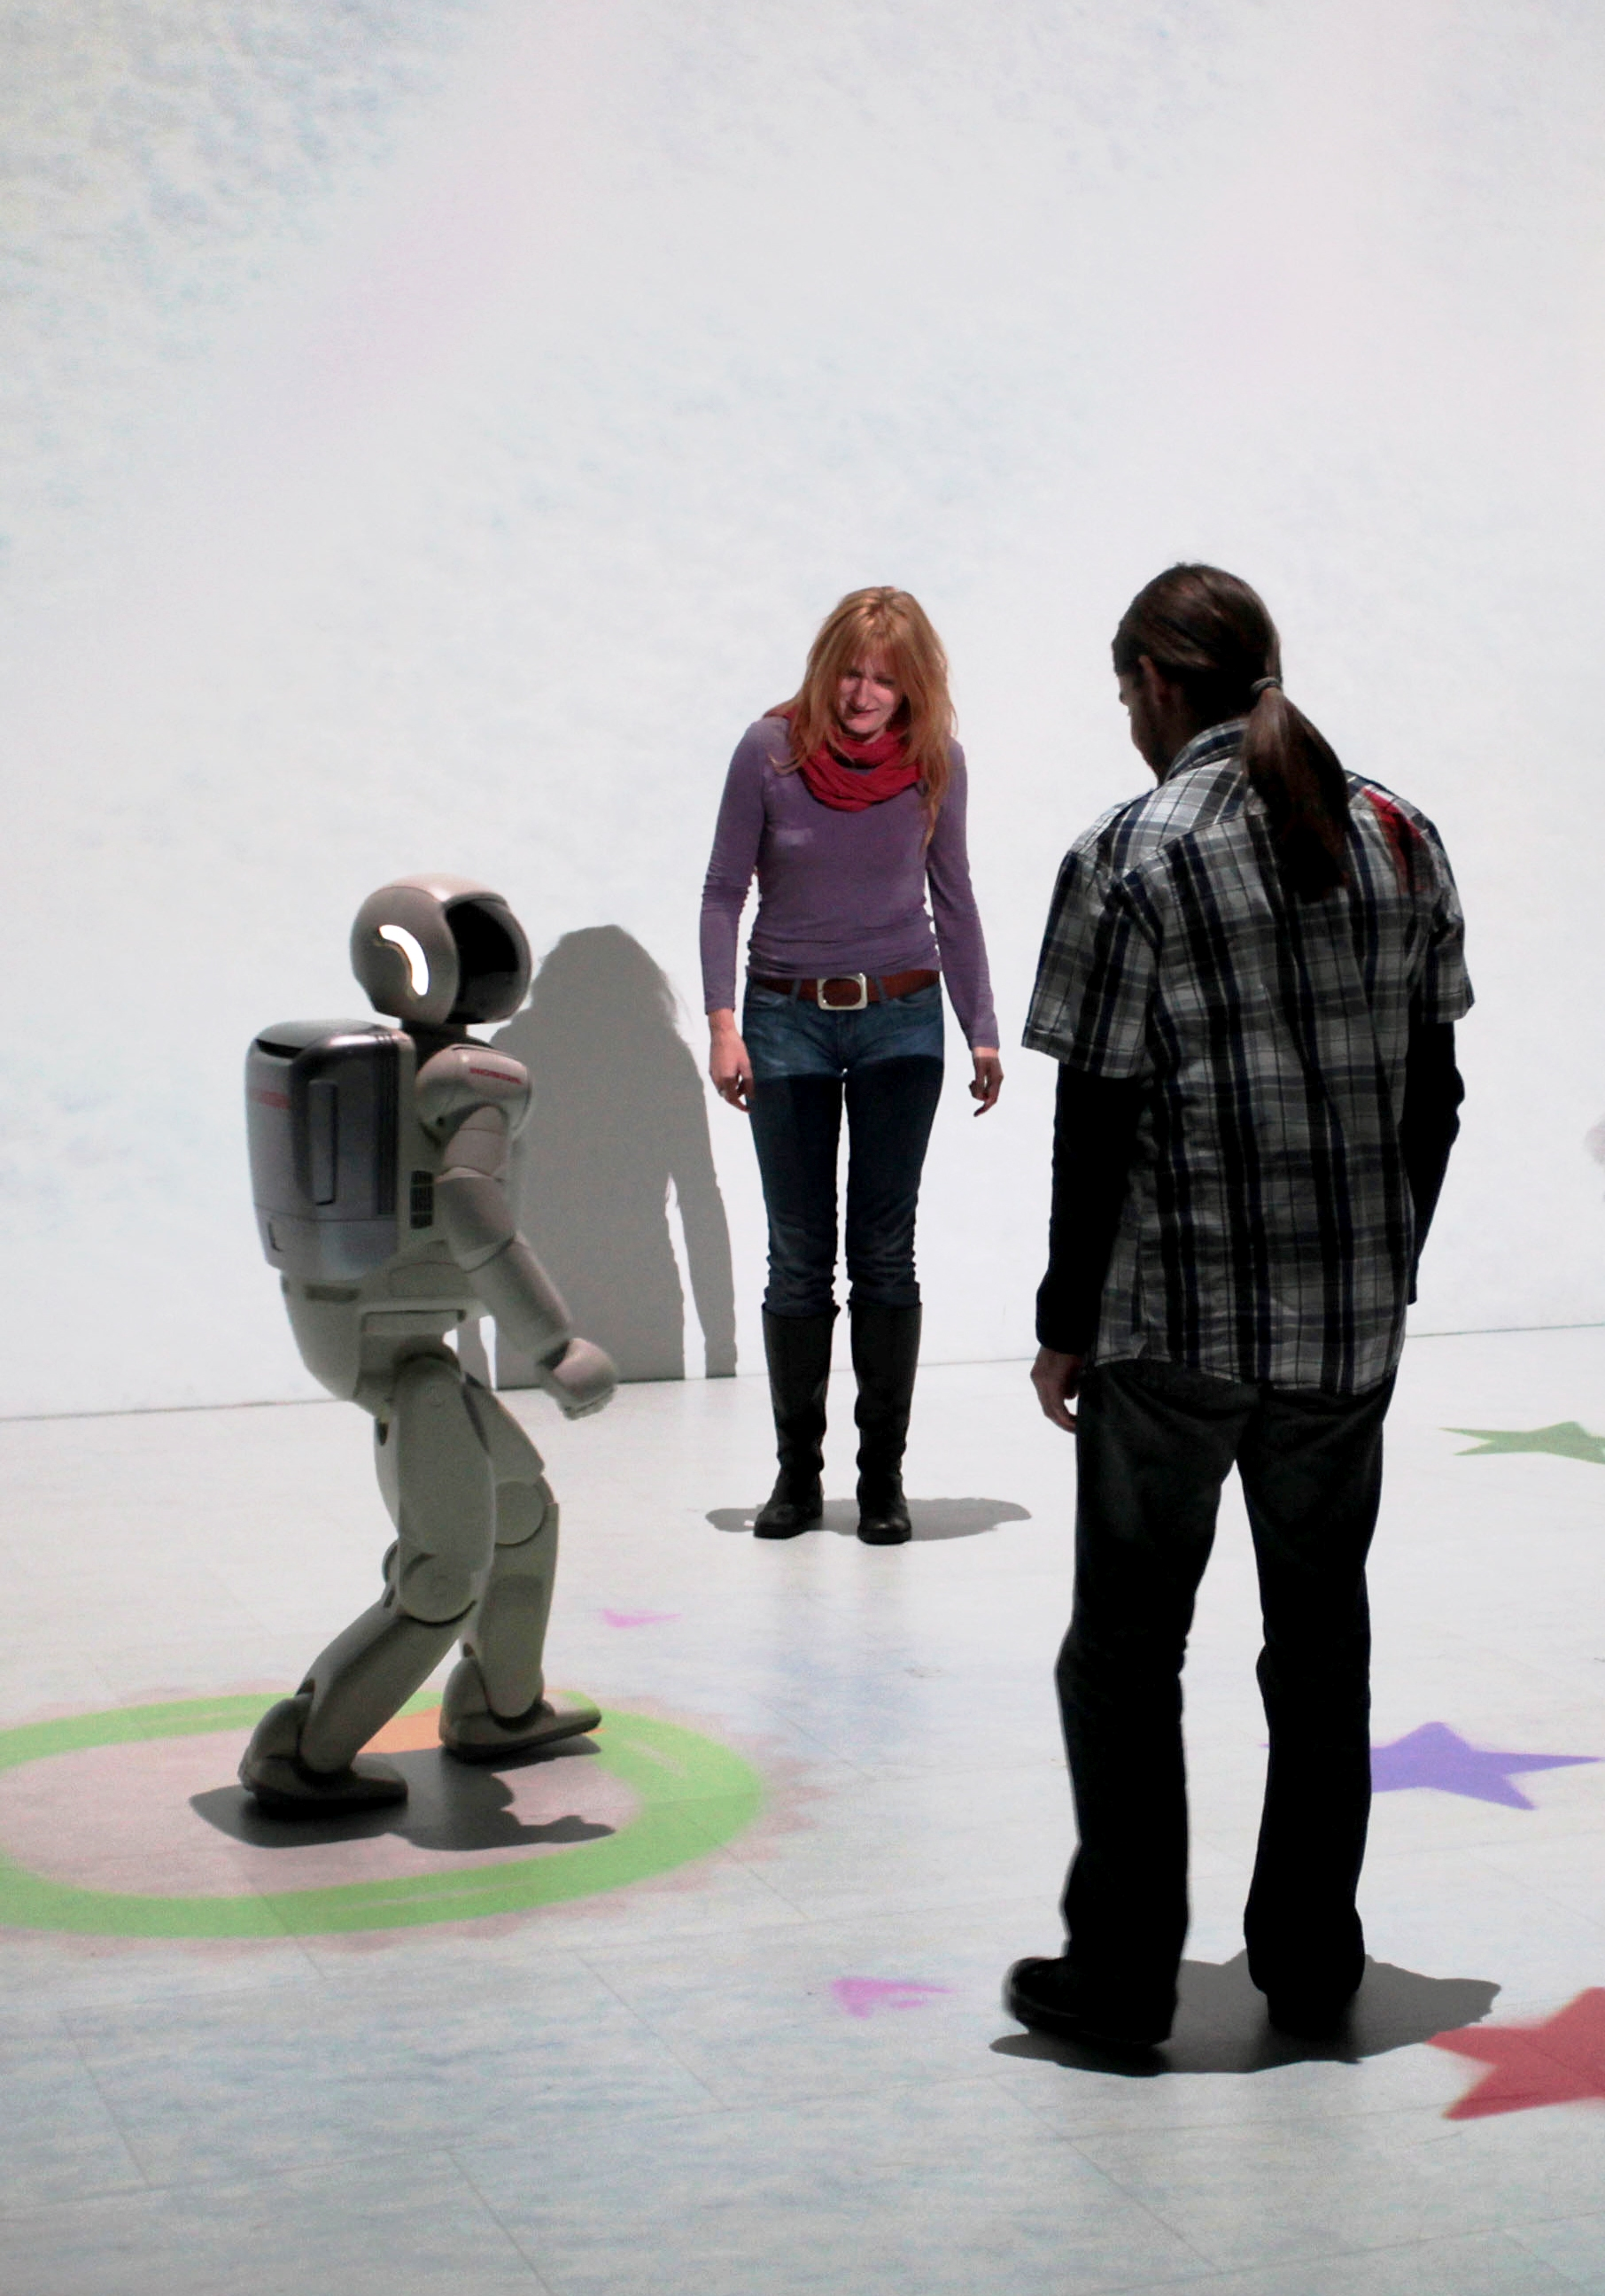 14435 Members of the public interact with ASIMO at Ars Electronica ... Industry News